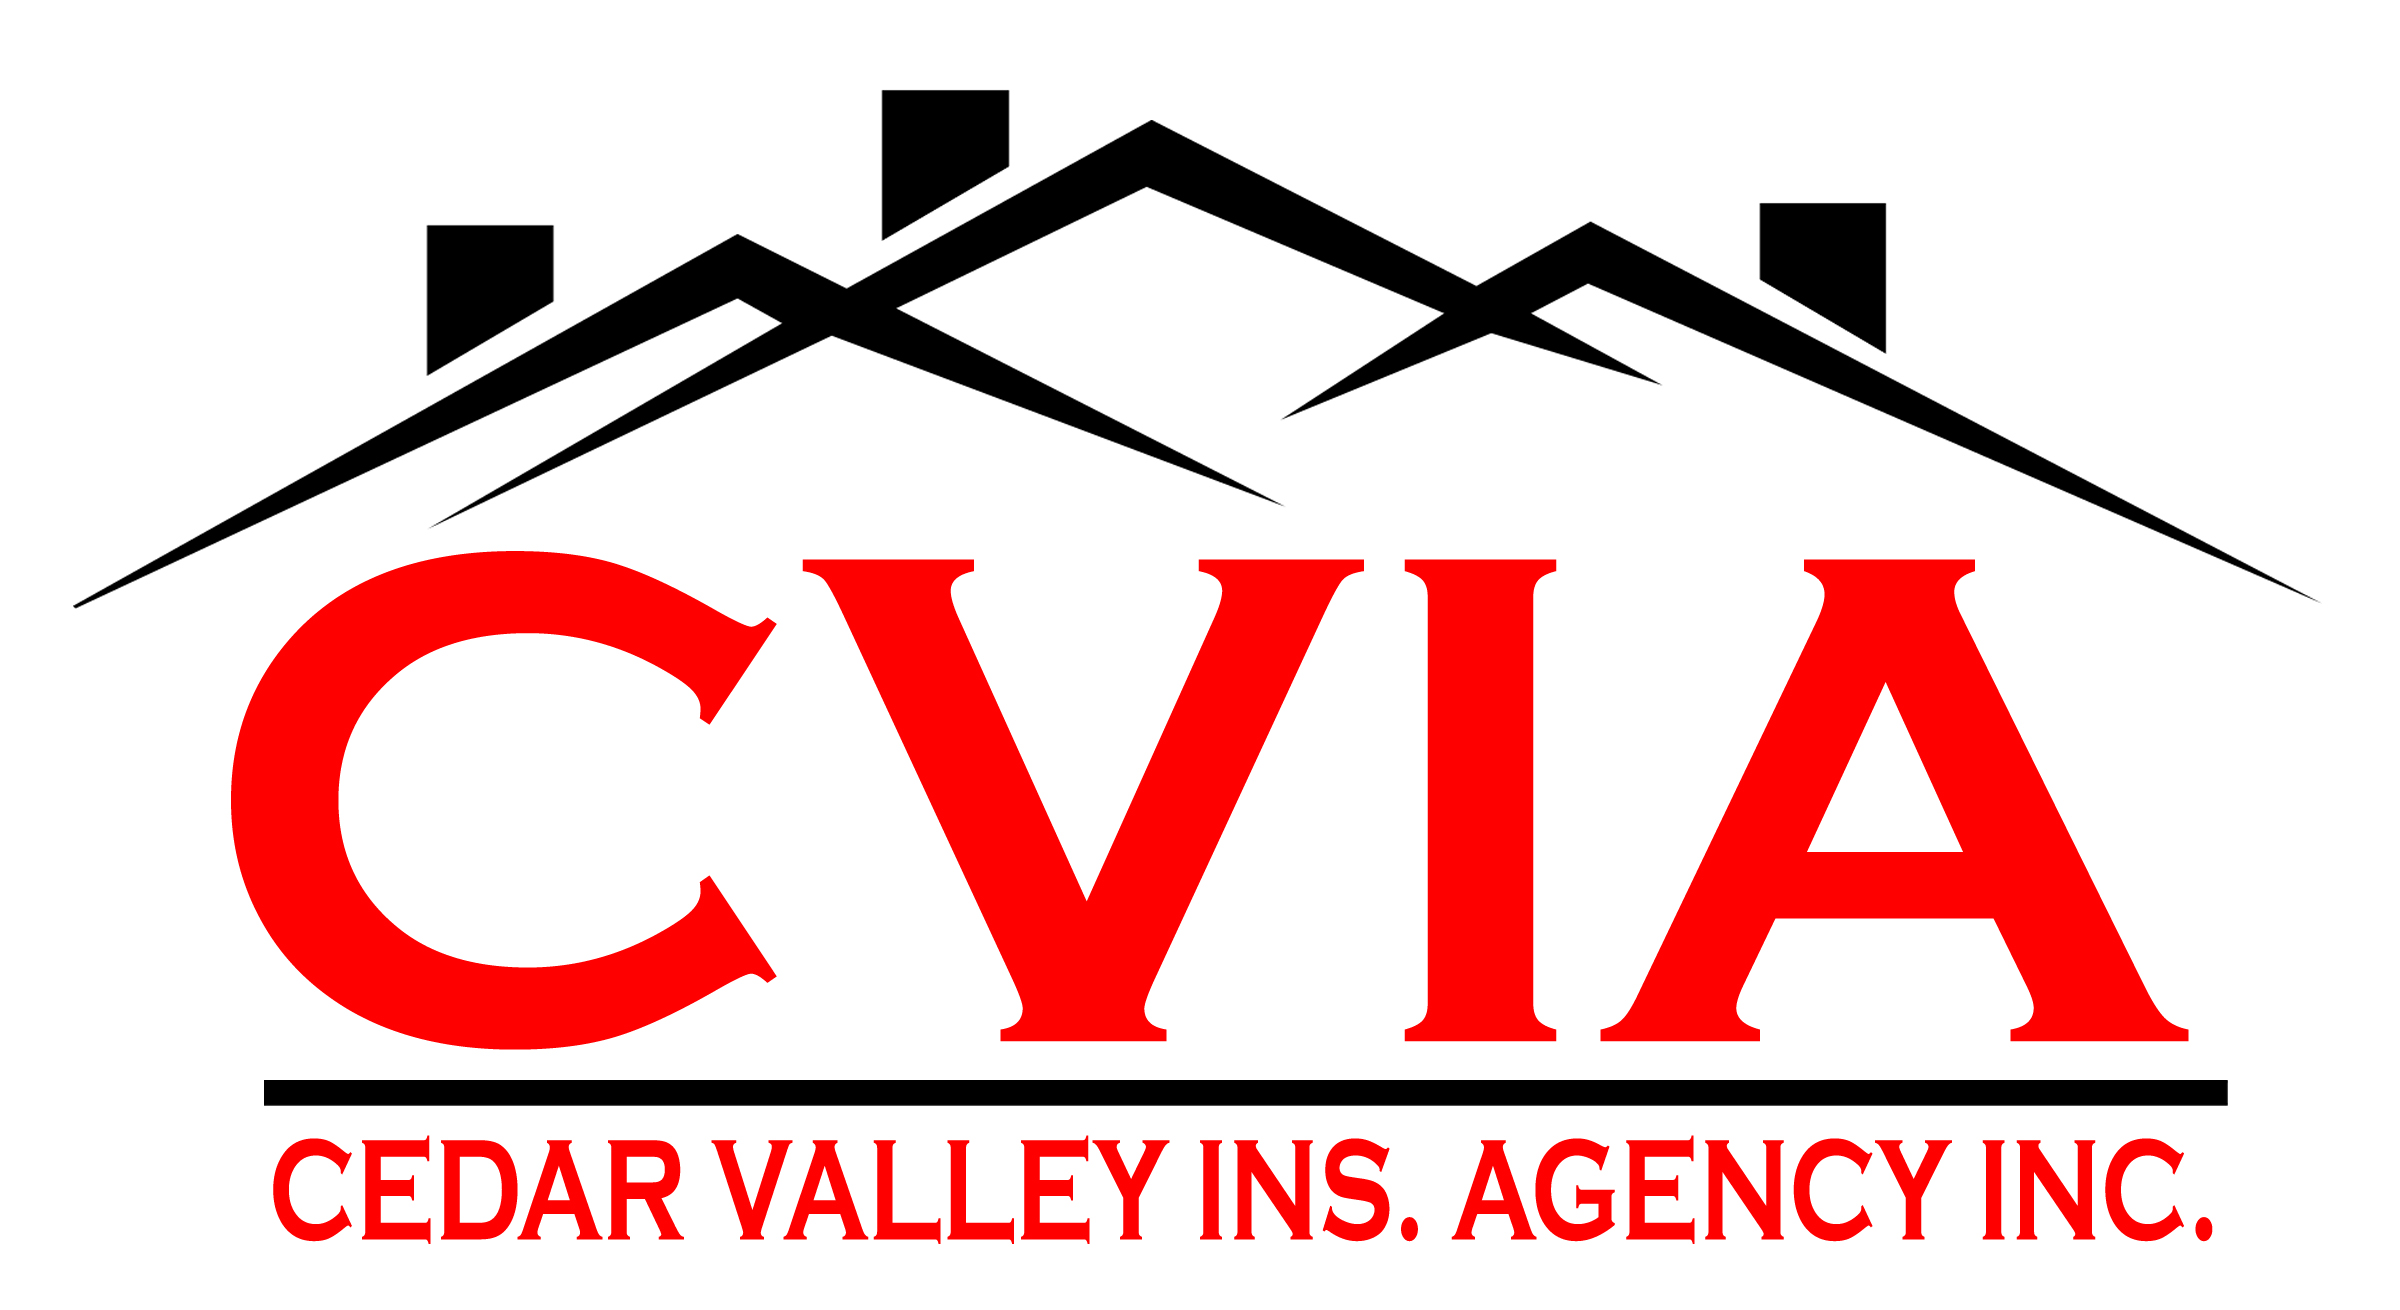 Cedar Valley Insurance Agency, Inc.